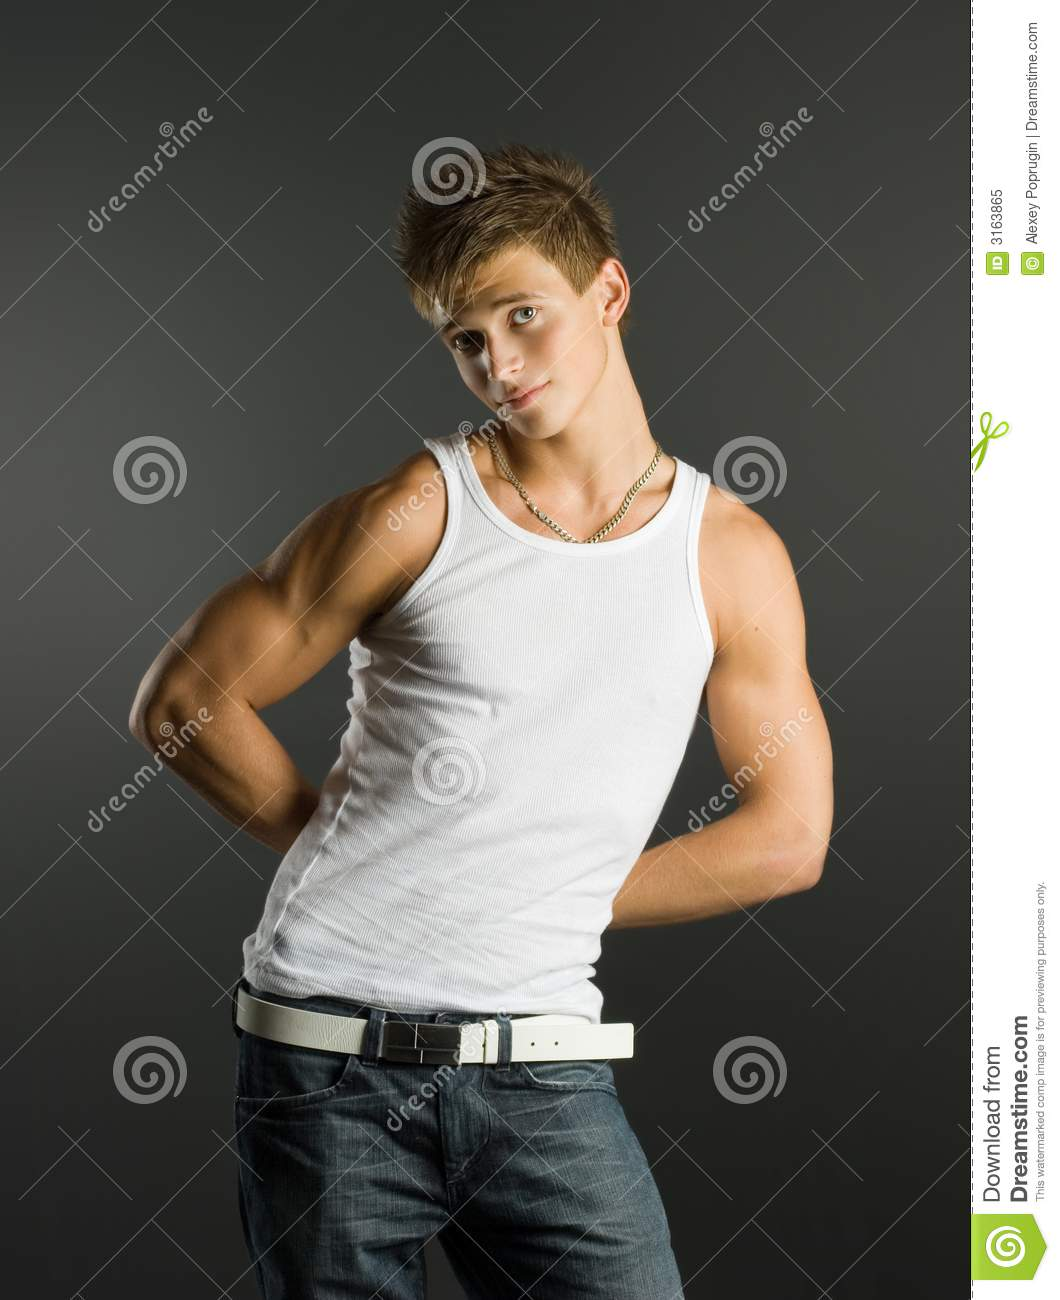 handsome friendly boy stock image image of model people